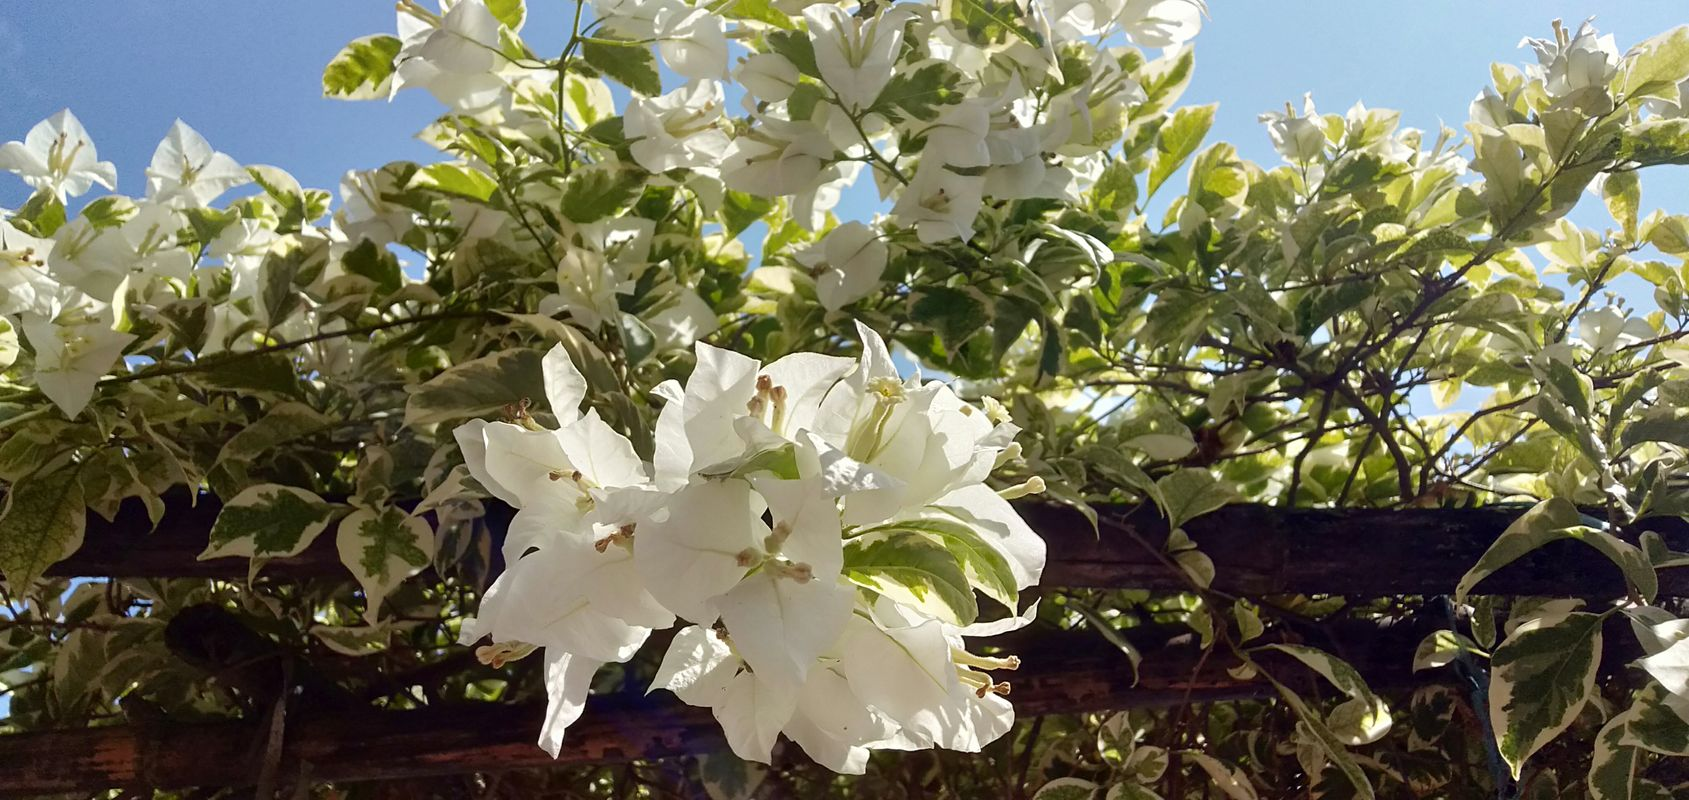 Close Up of White Bougenville Flowers